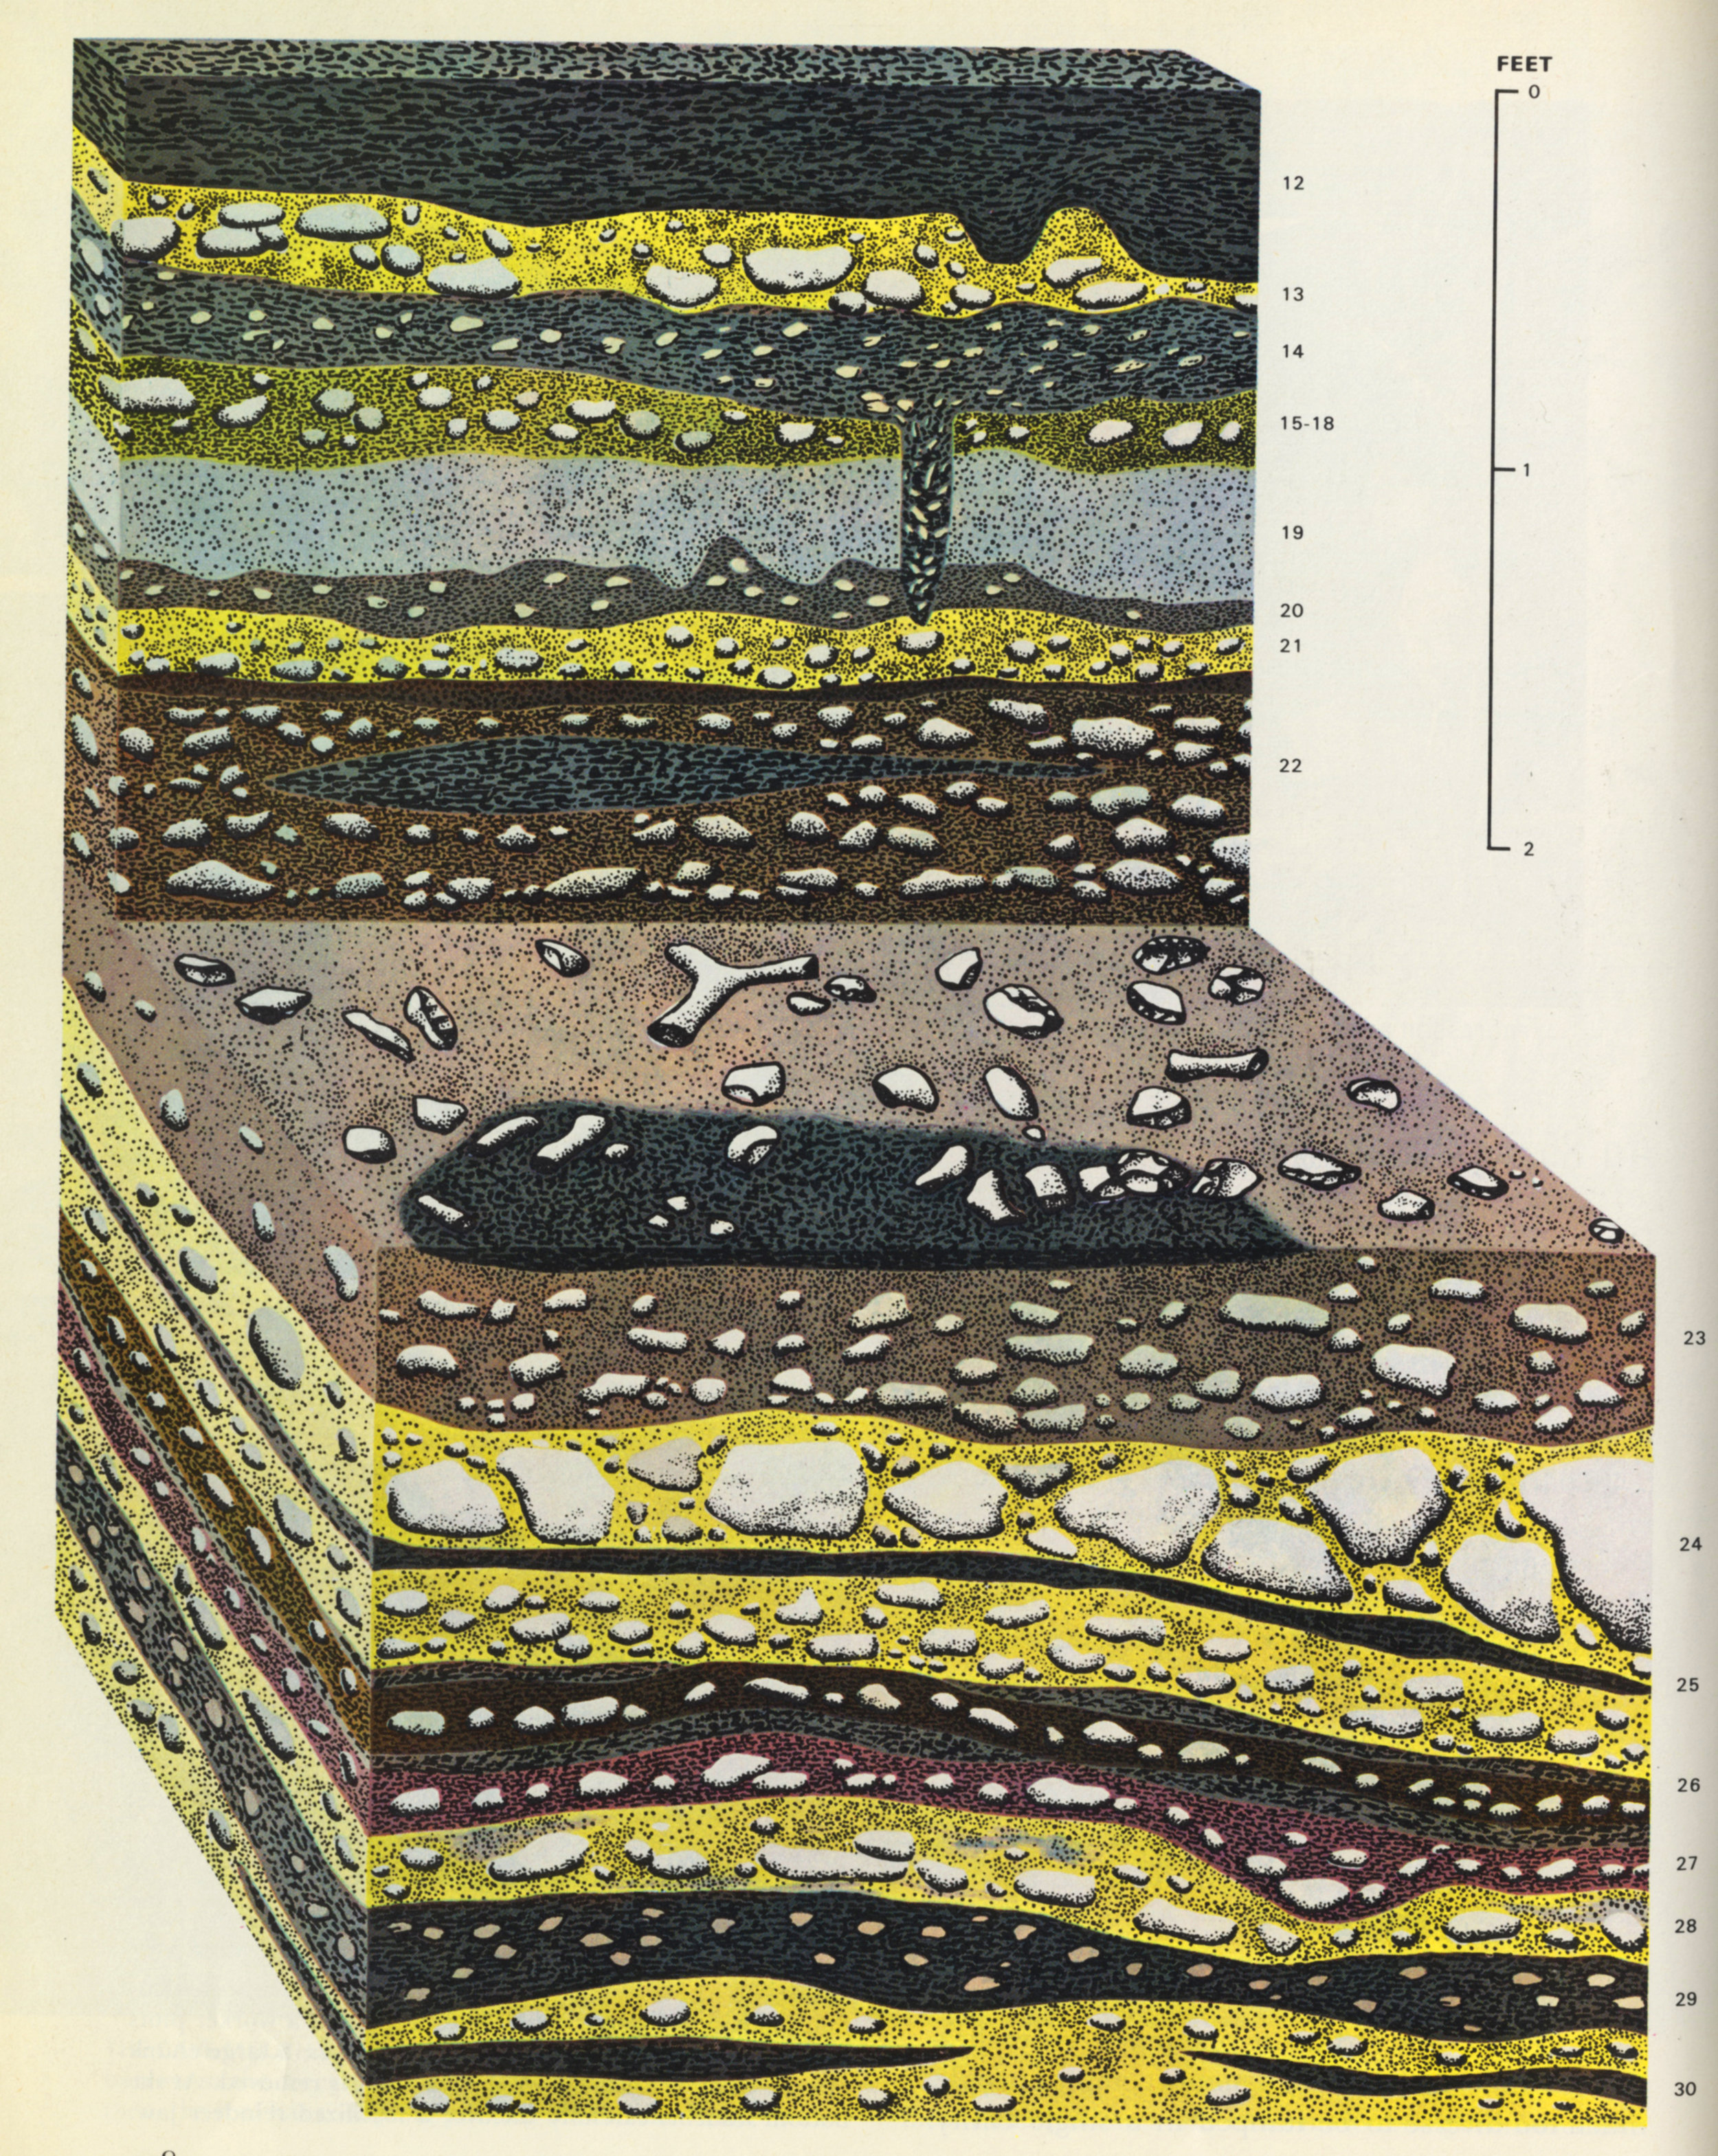 Illustration of archaeological dig , Dordogne, France in  Early Man , Time-Life Books, 1965. Art direction by Sheldon Cotler; illustrator uncredited. (1 of 2) Note that we see the excavated matter from three sides, to provide spatial context and scale reference for the schematic representations of several layers called out in diagrams—one of which is shown below.